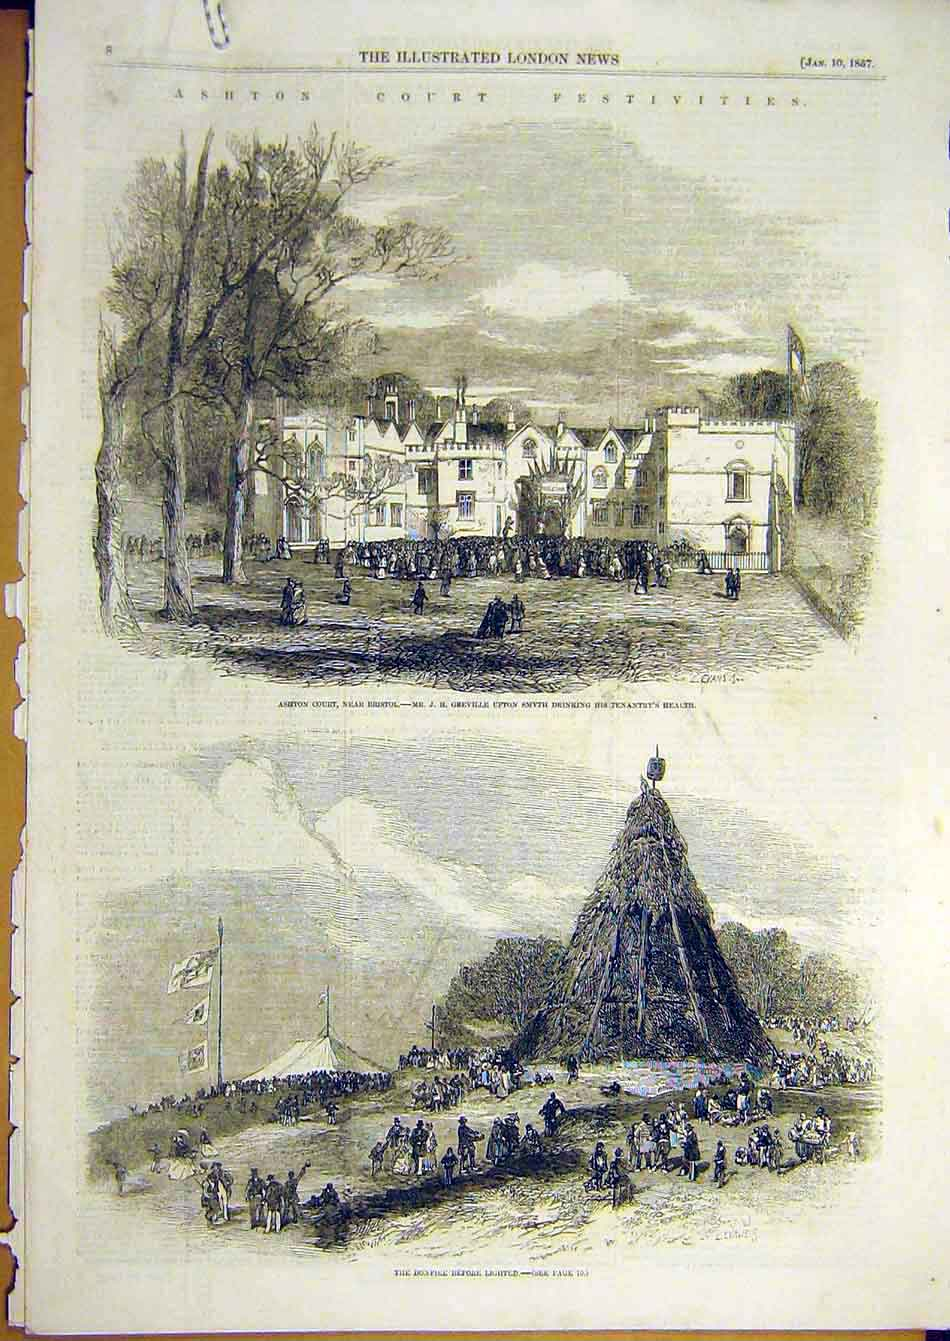 Print 1857 Ashton Court Bonfire Bristol Festivities Fireworks 44A7951 Old Original